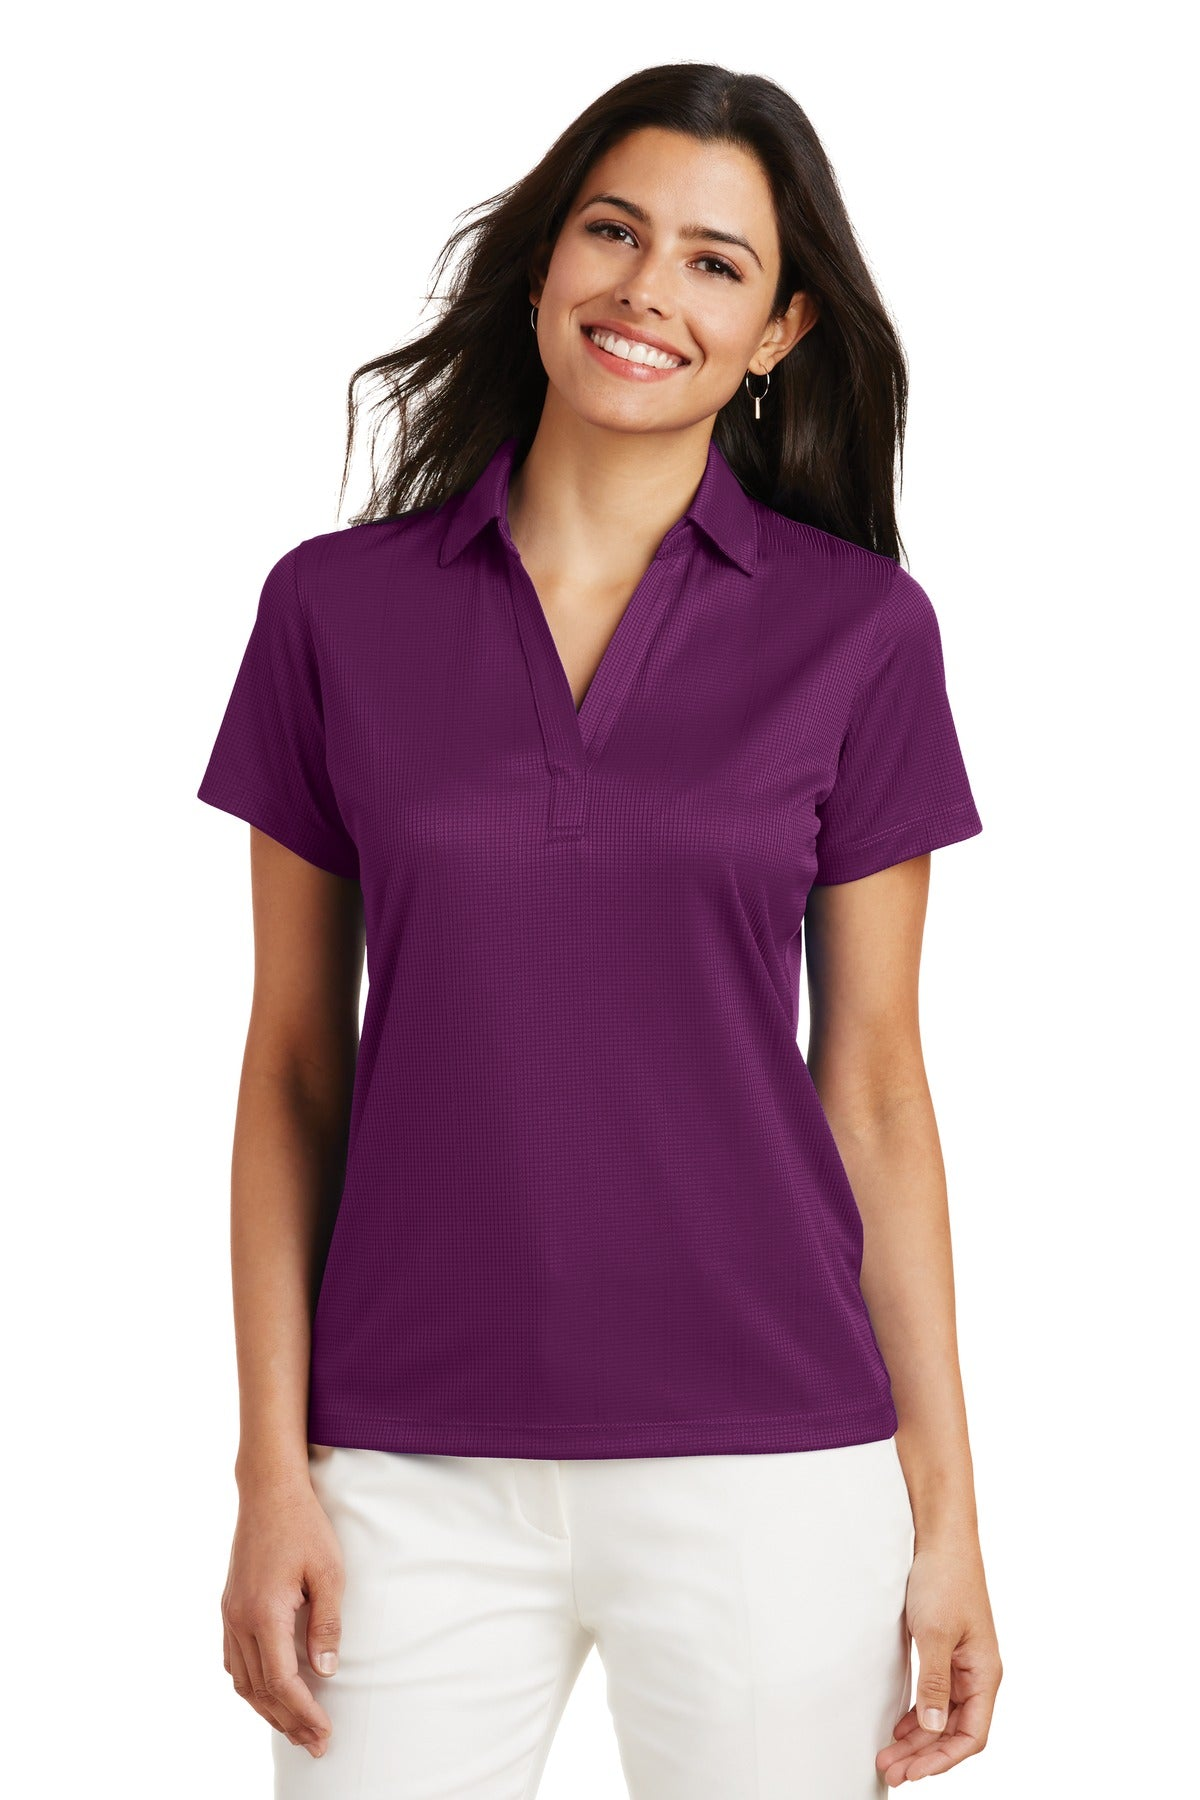 Carolina Blue Port Authority ® Ladies Silk Touch Performance Long Sleeve Polo.